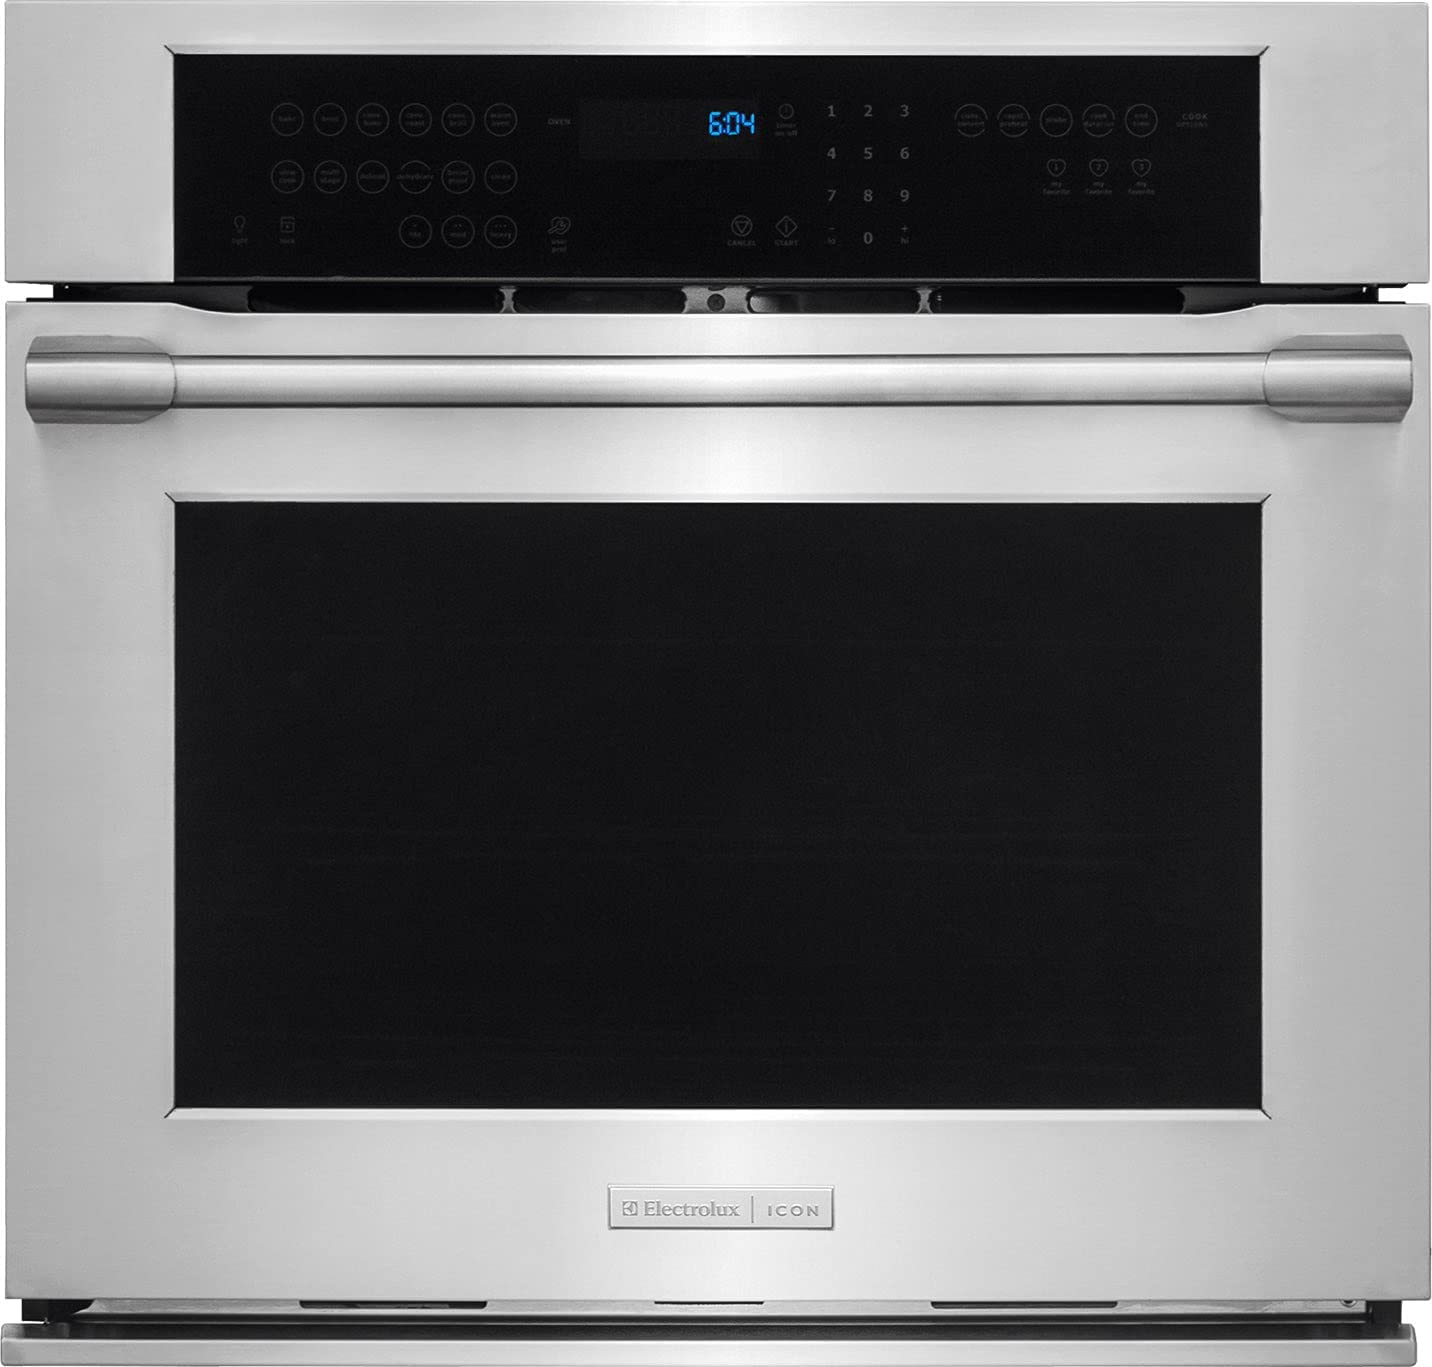 Popular overseas Electrolux ICON Professional E30EW75PPS Inch 30 Sale Electric Single